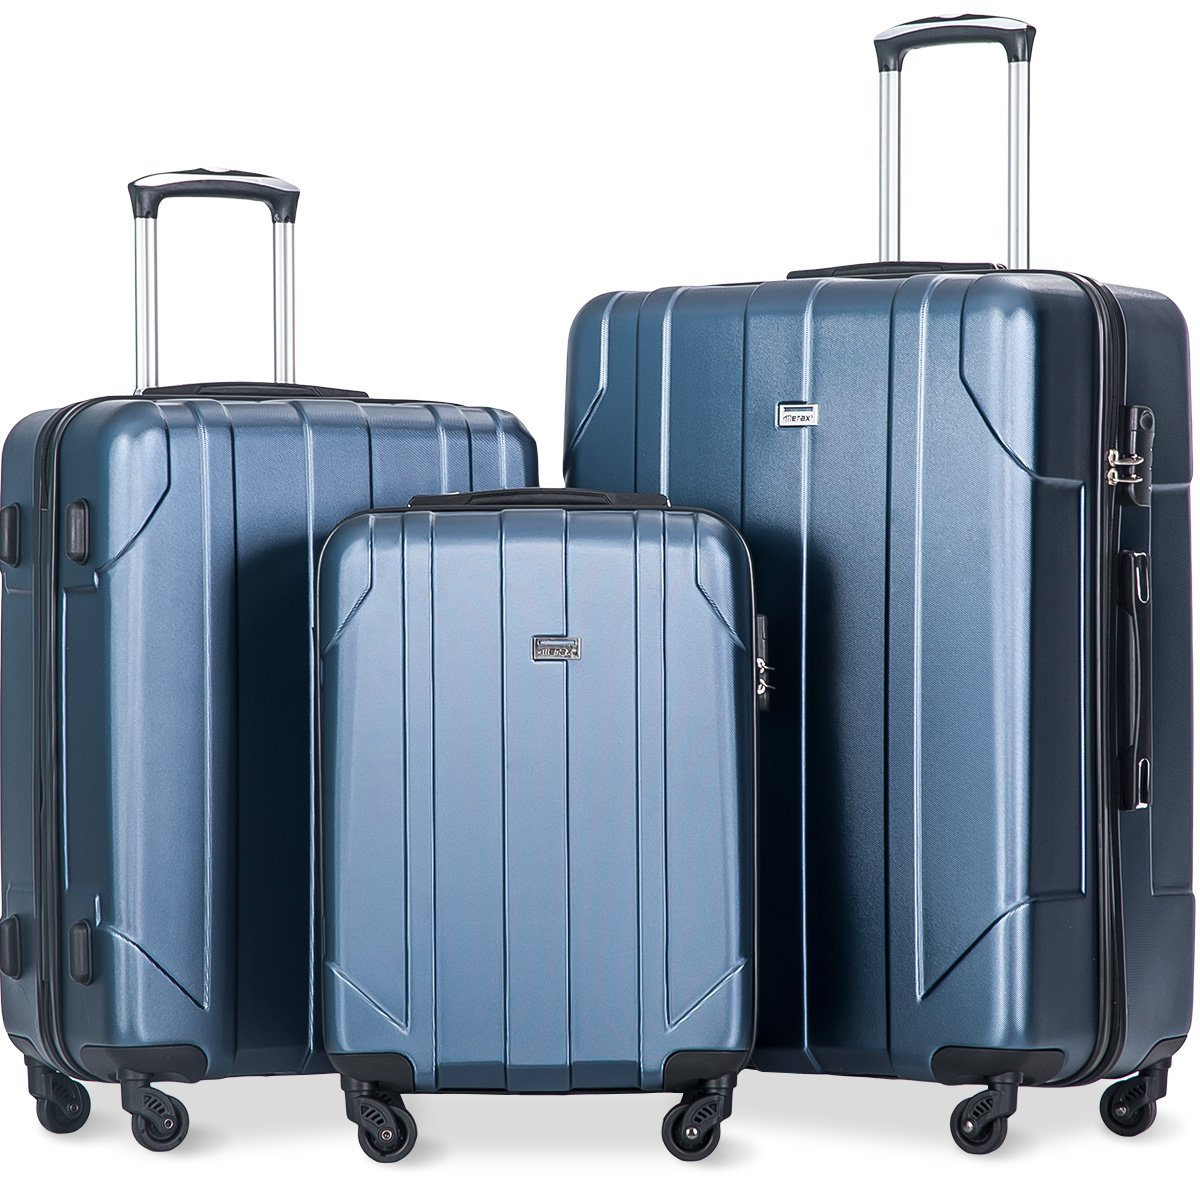 Merax 3 Piece P.E.T Luggage Set Eco-friendly Light Weight Travel Suitcase (Navy.)